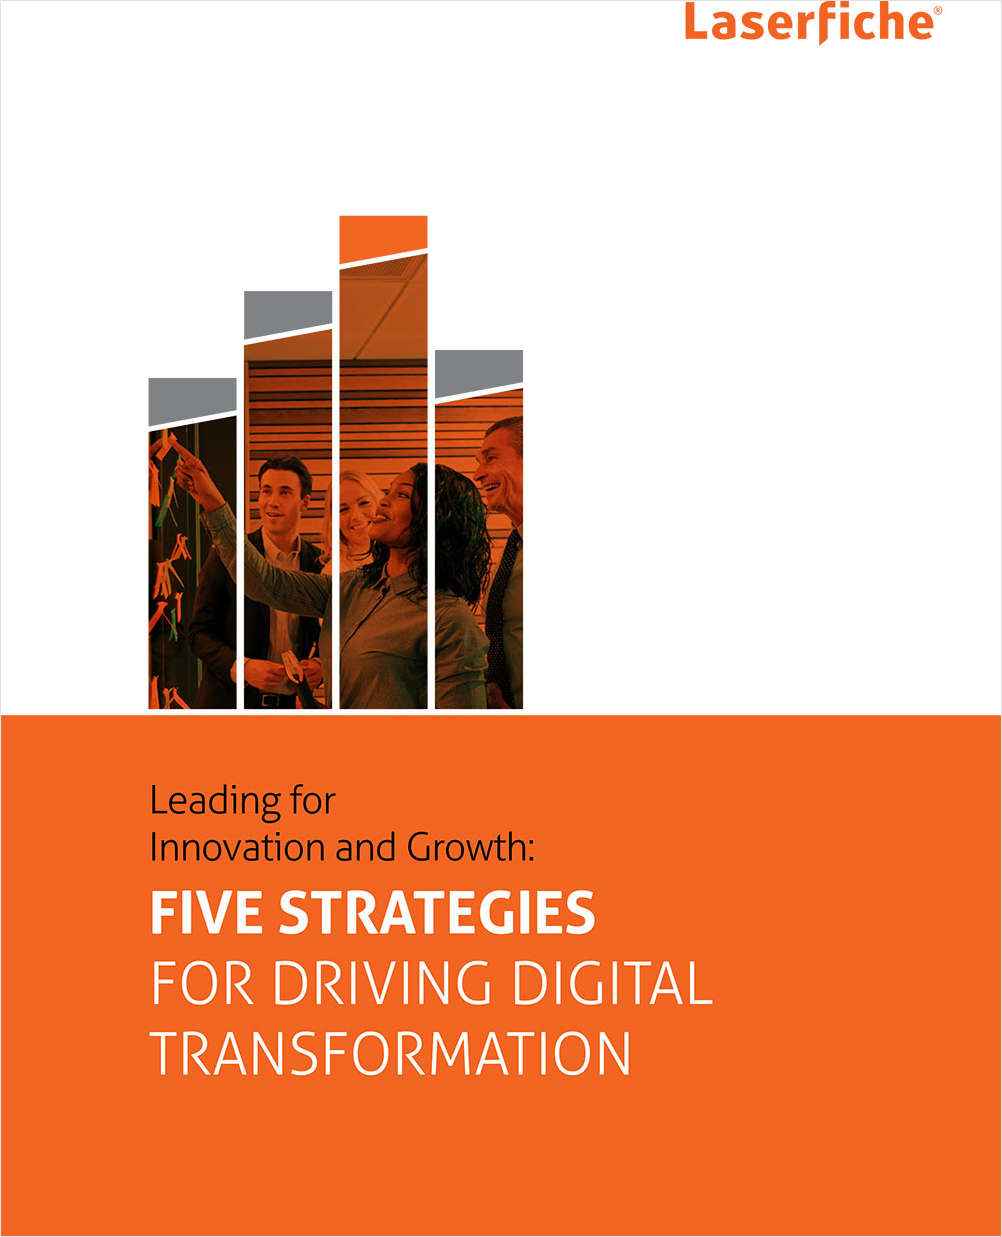 Five Strategies for Driving Digital Transformation at Your Firm